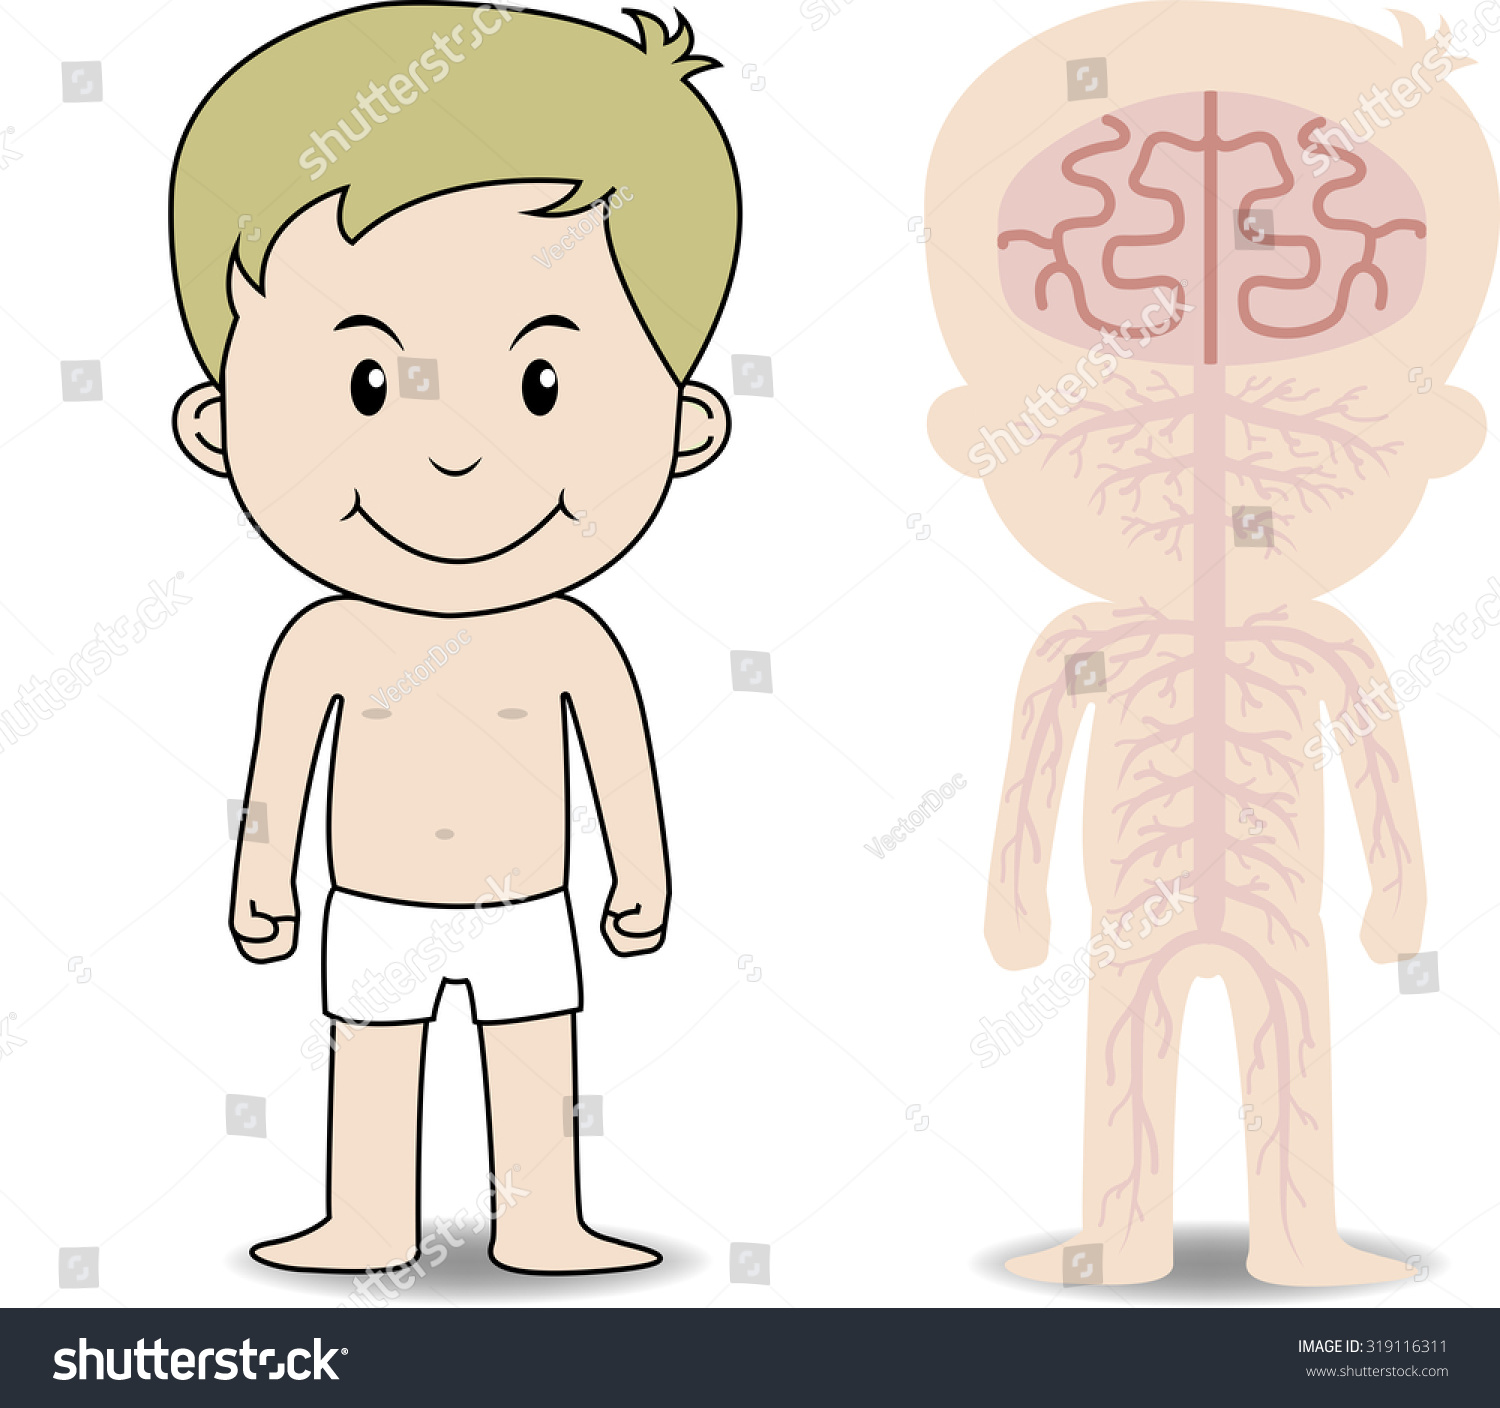 My Body Educational Anatomy Body Organ Stock Vector Royalty Free